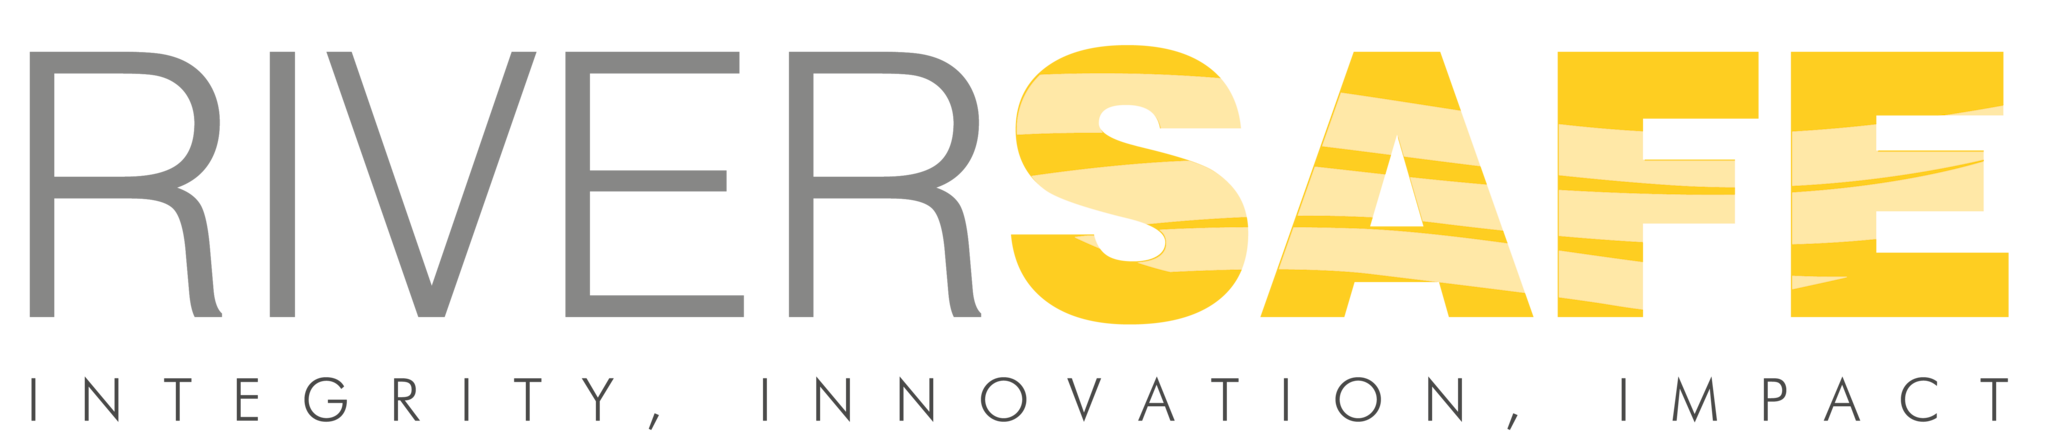 riversafe logo